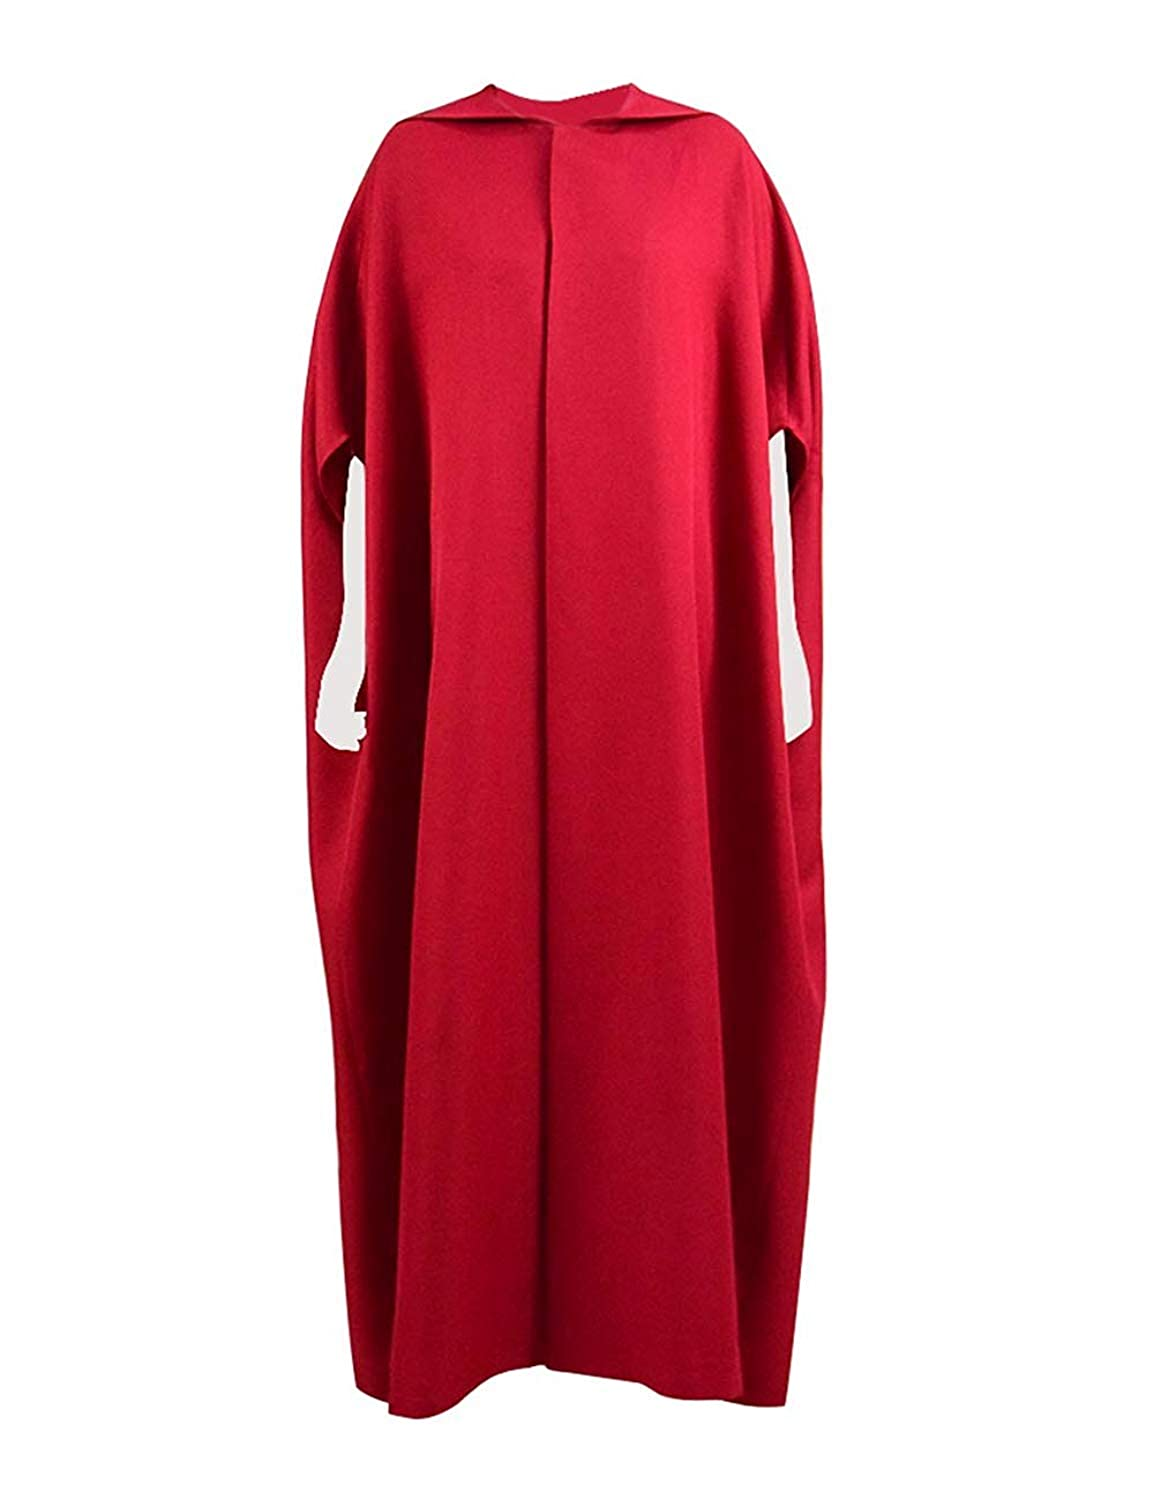 3-CM The Handmaid`s Tale Costume Red Cape